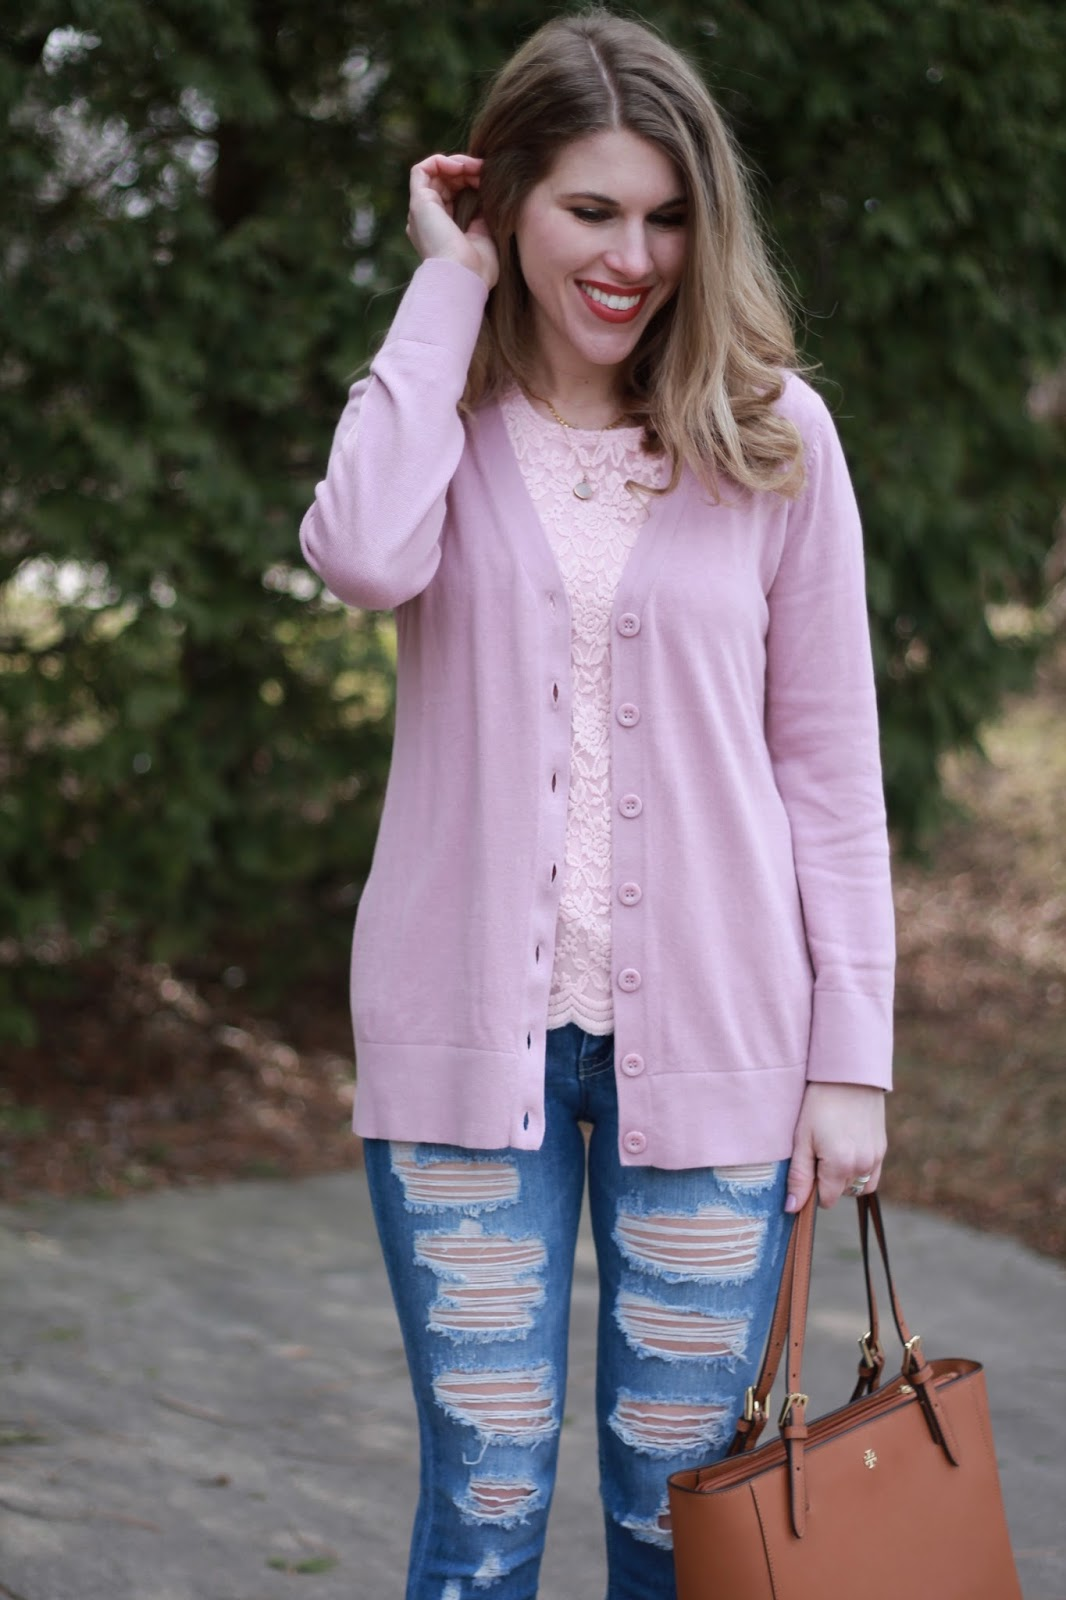 Blush lace top, pink cardigan, distressed jeans, blush heels for spring